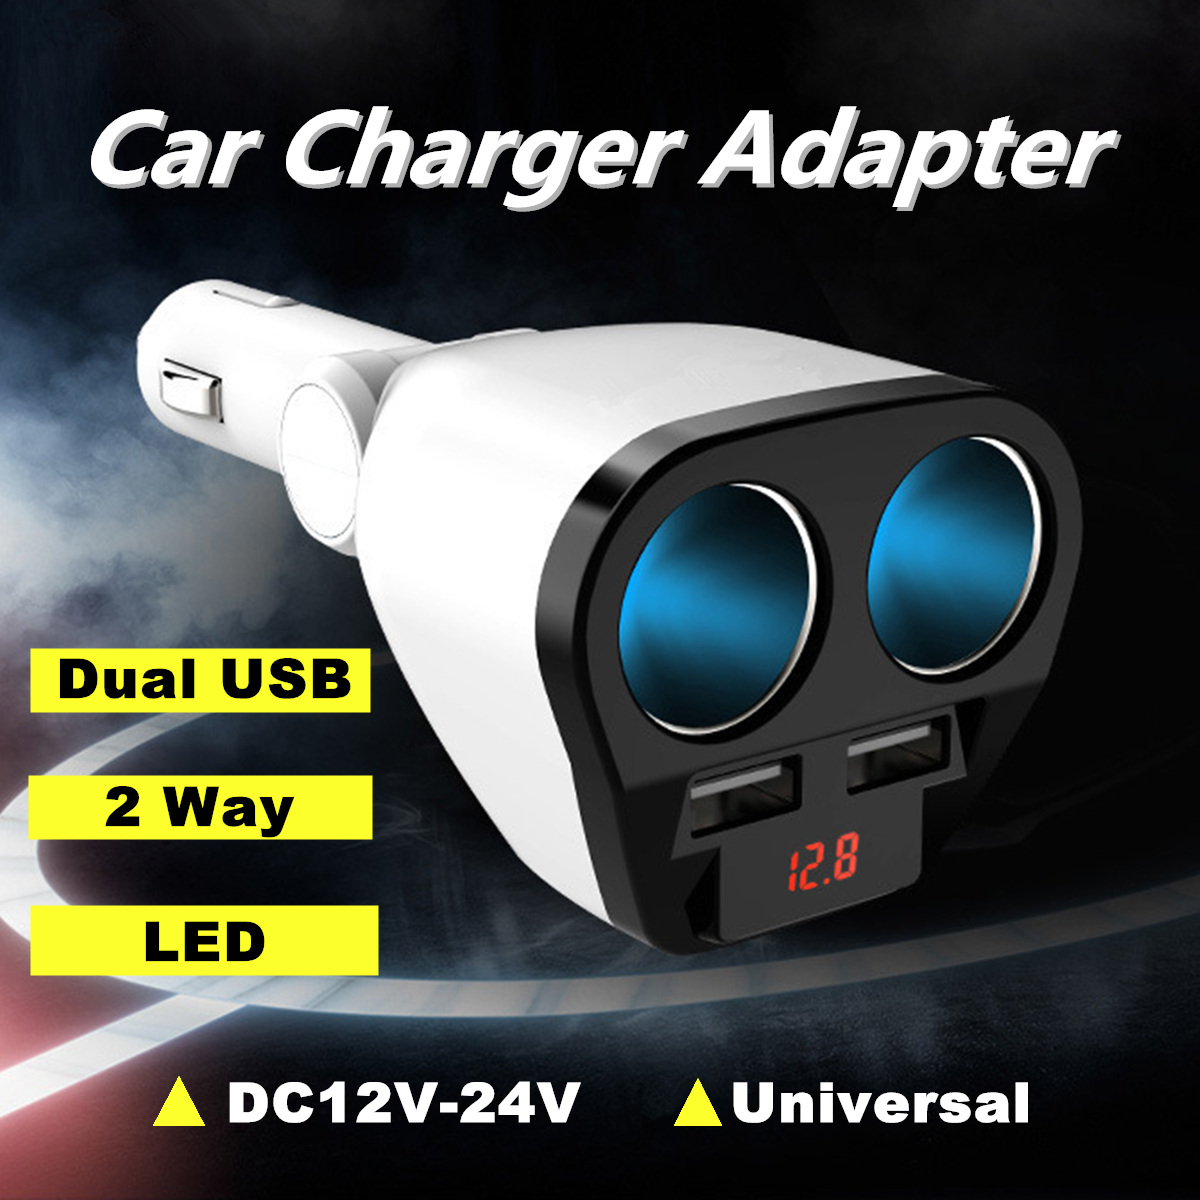 12V 2.4A Cigarette Lighter Dual USB 2 Way Car Socket Power Charger Adapter for Cell Phone